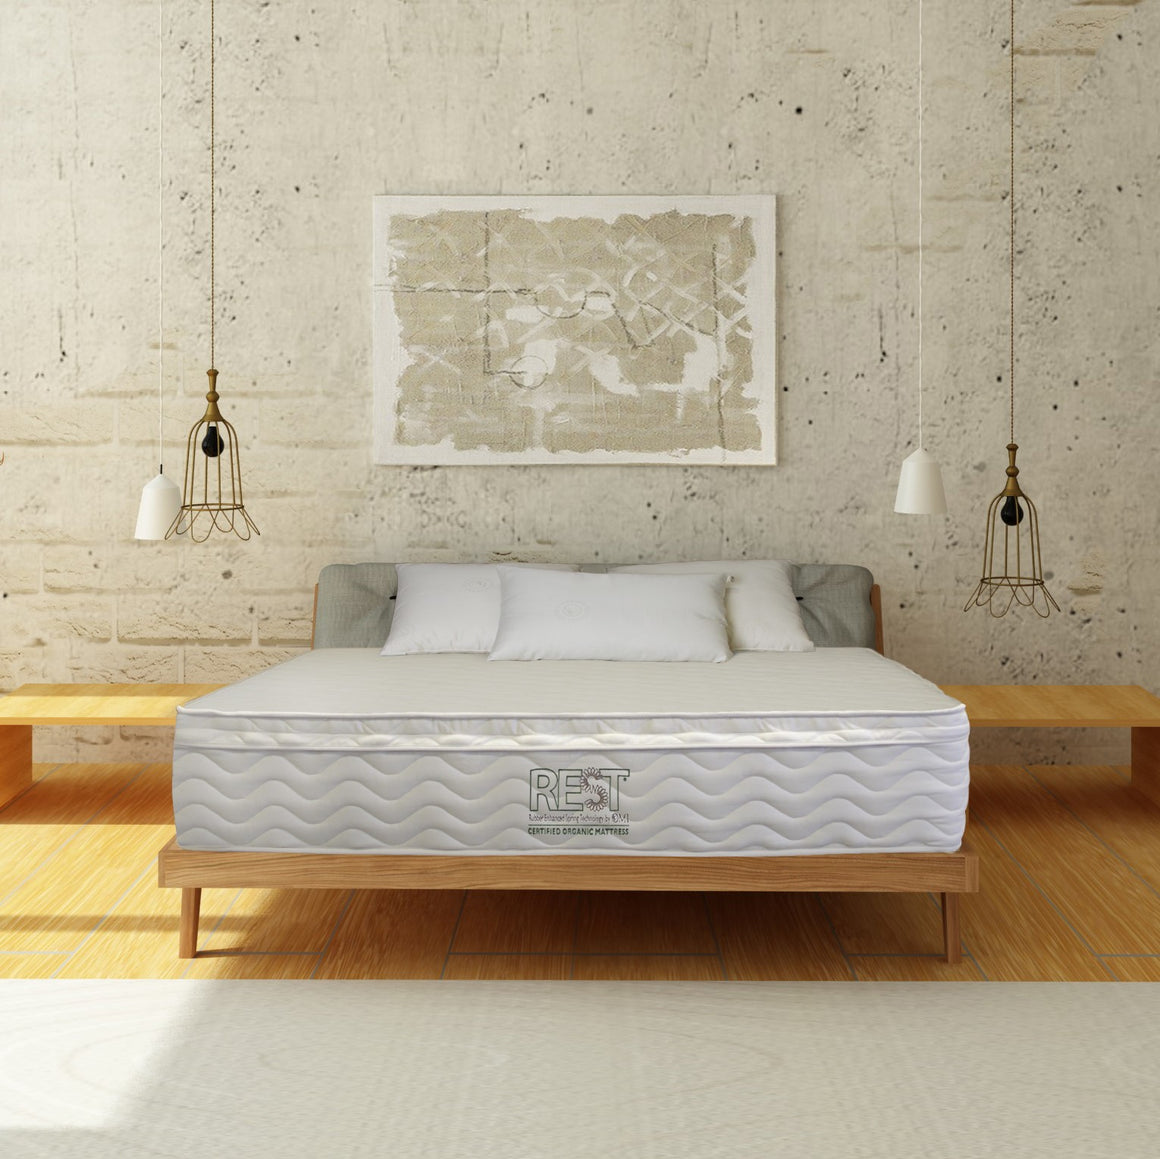 OMI REST ROSSA Mattress